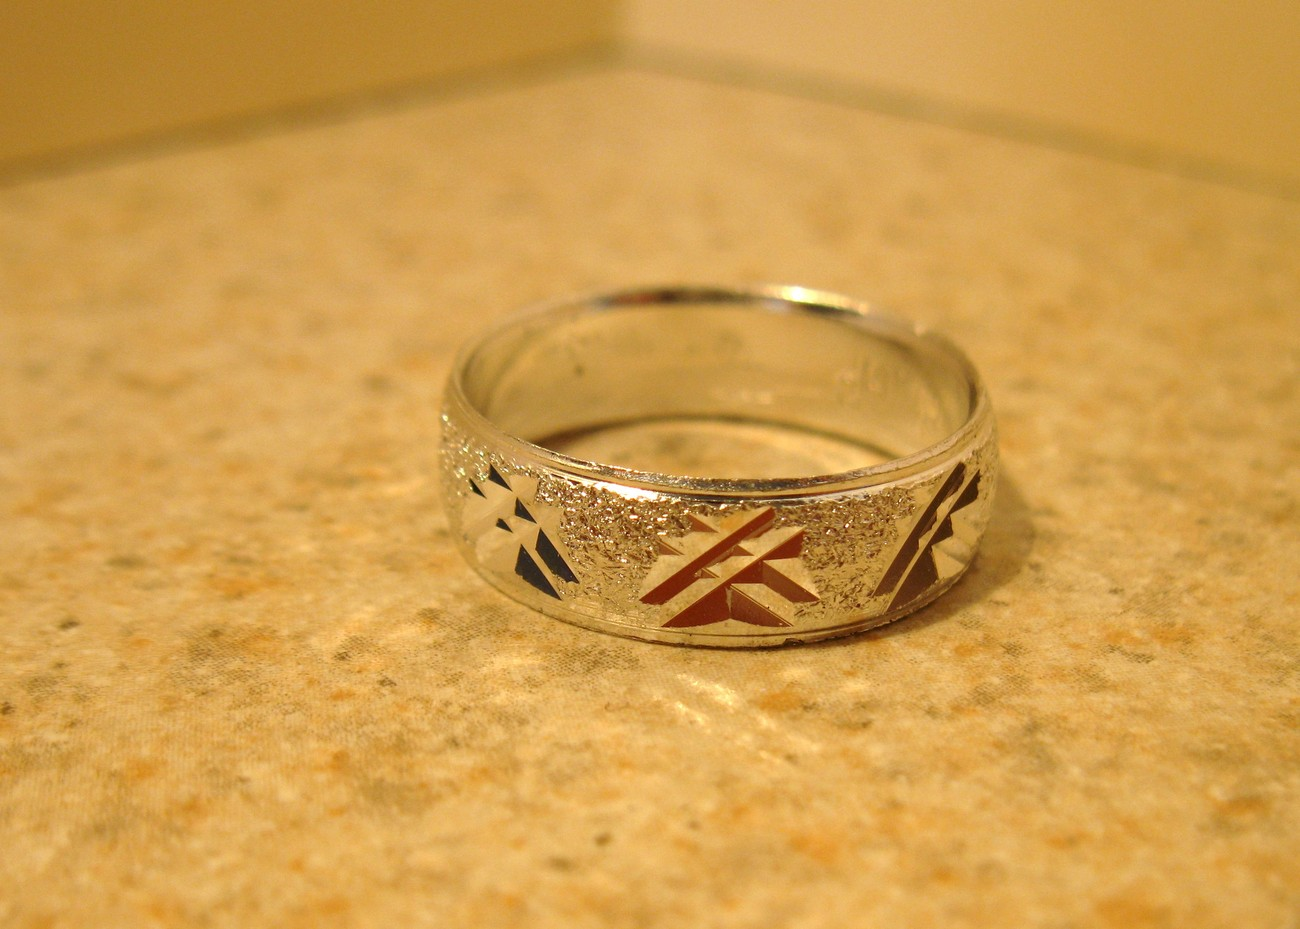 RING MEN WOMEN UNISEX SILVER PLATED BAND SIZE 7.5 #976